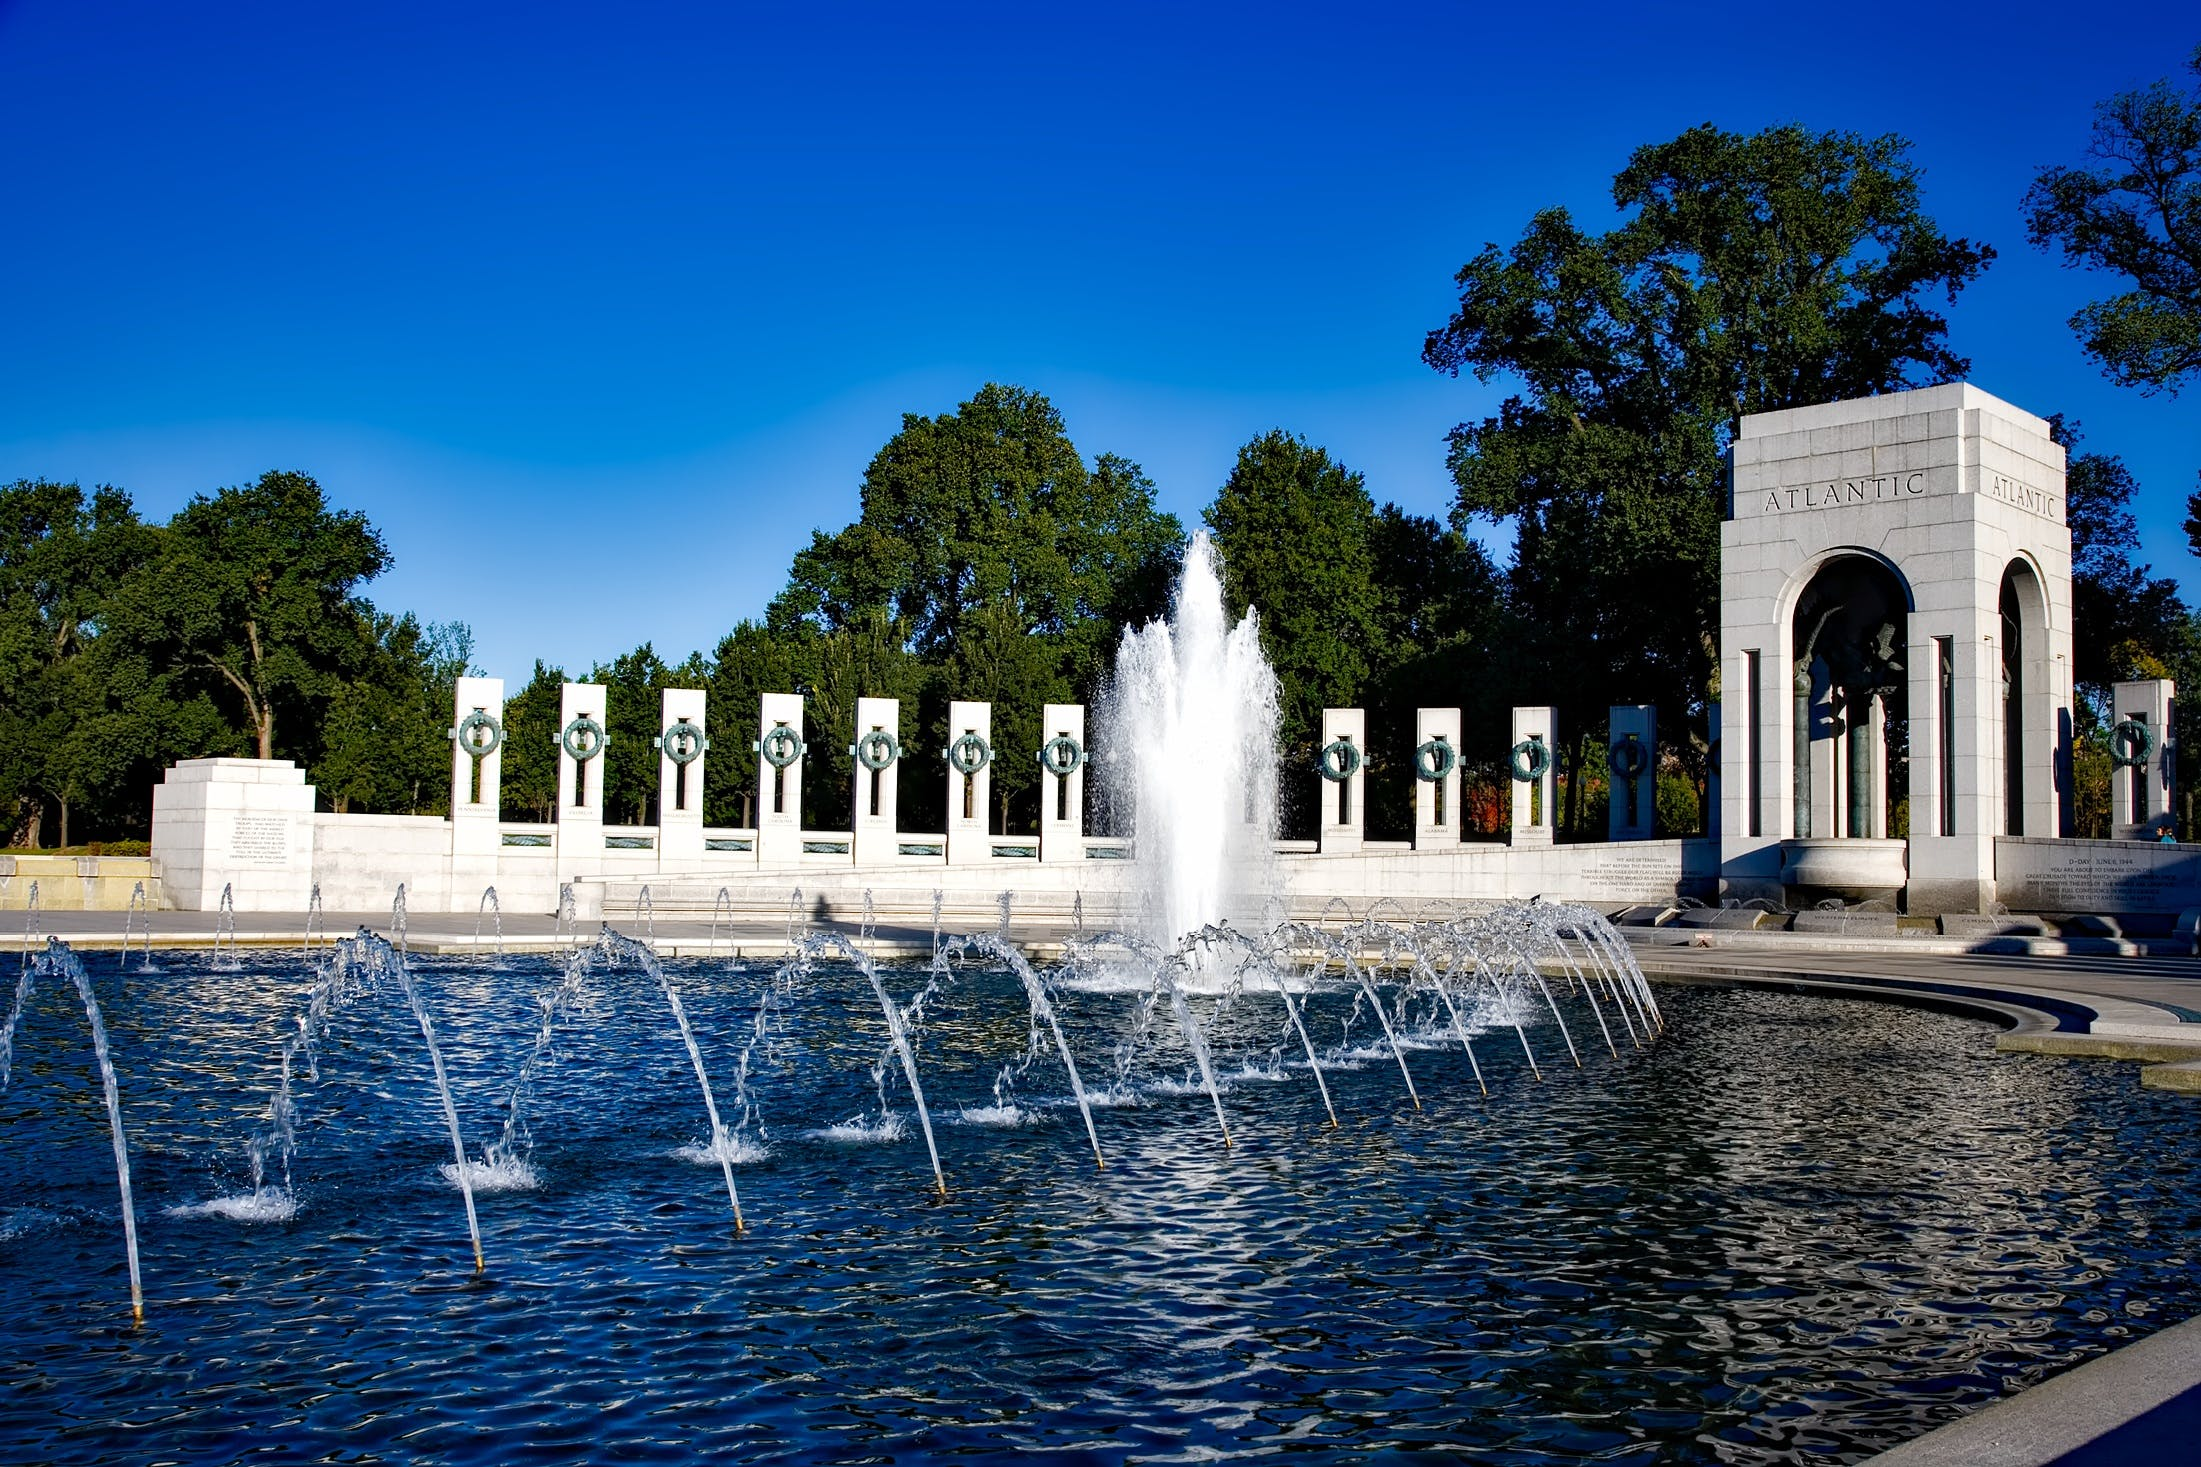 Time-lapse Photography of Water Fountain Under Calm Blue Sky